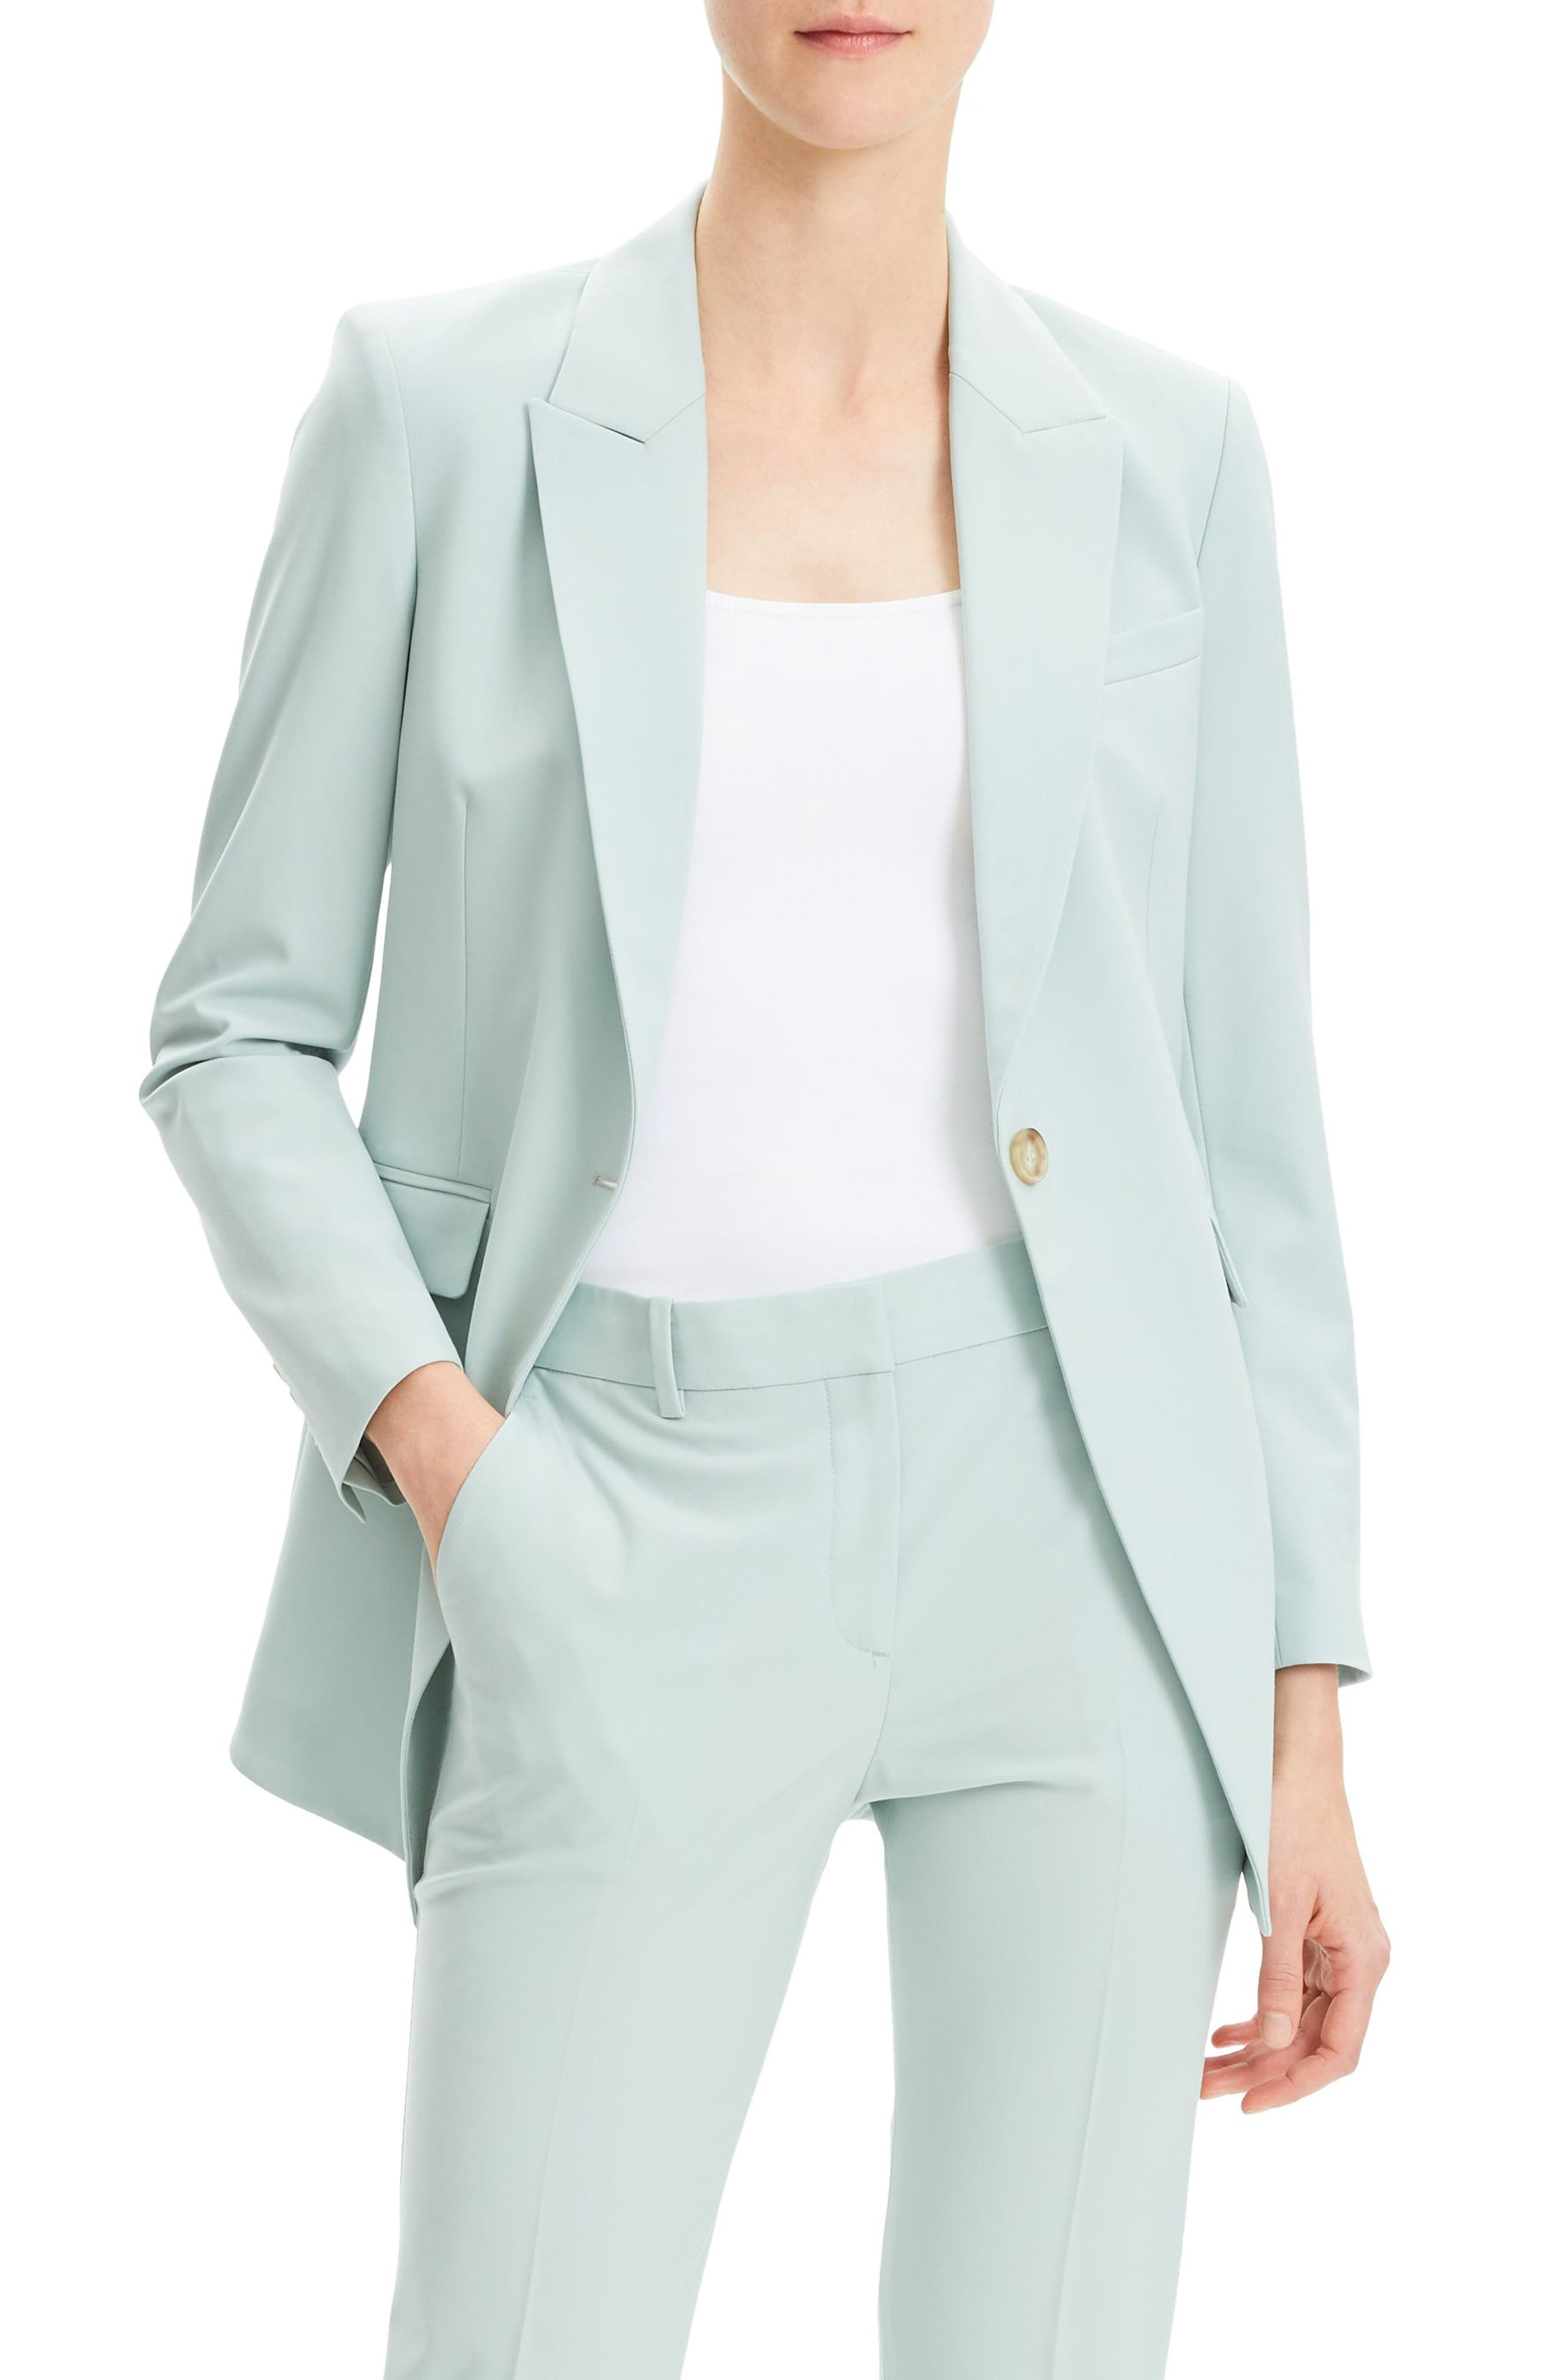 THEORY, Etienette B Good Wool Suit Jacket, Main thumbnail 1, color, OPAL GREEN